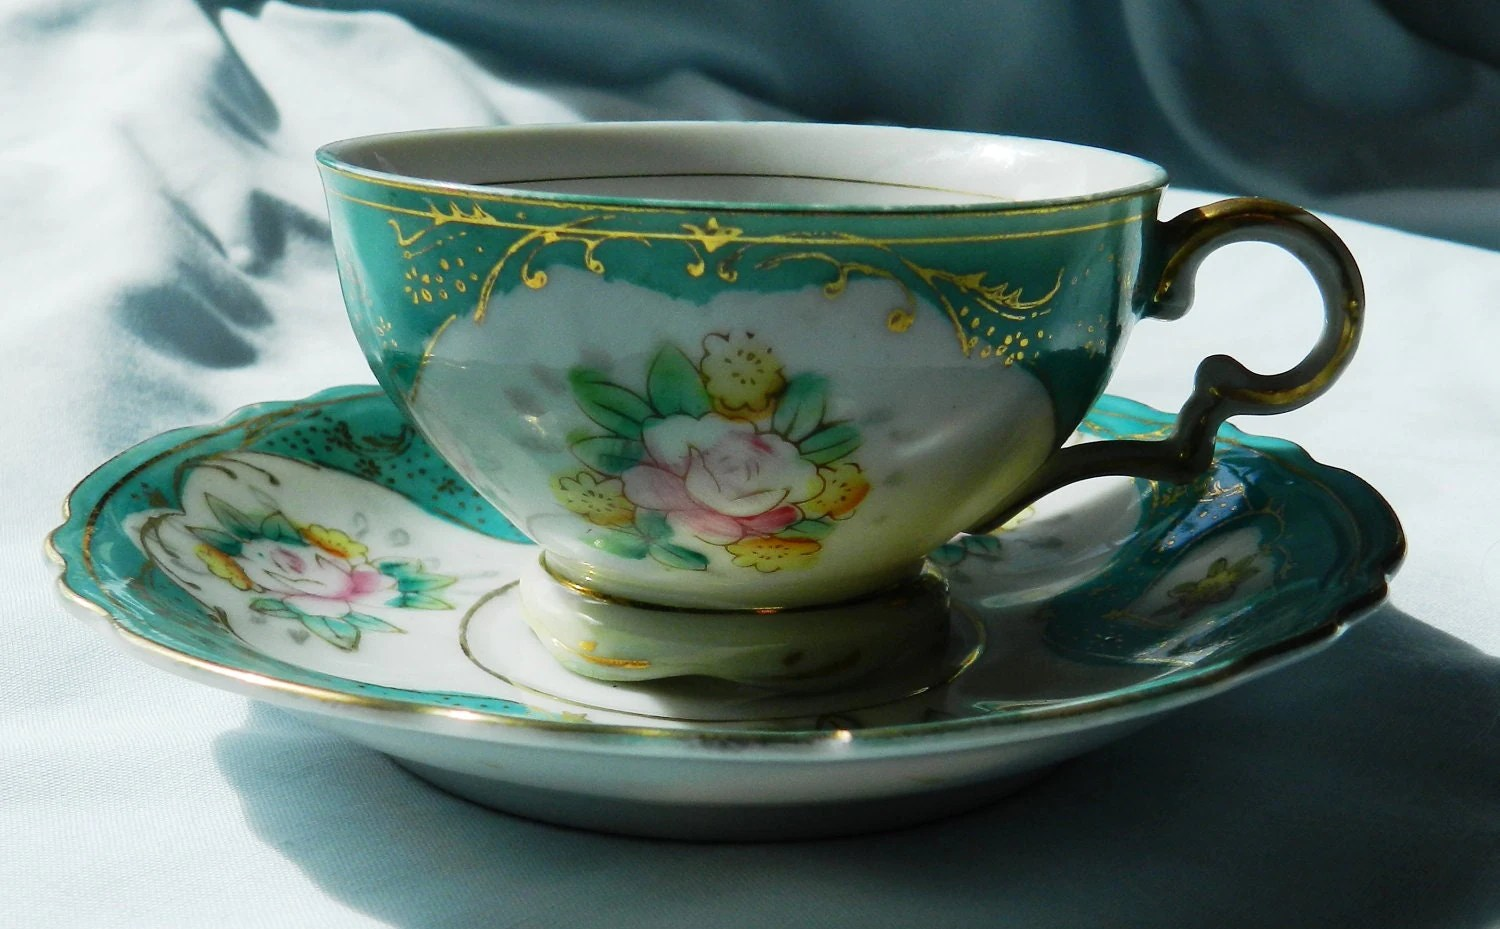 Made Japan Teacup Saucer Miniature Trademarks And